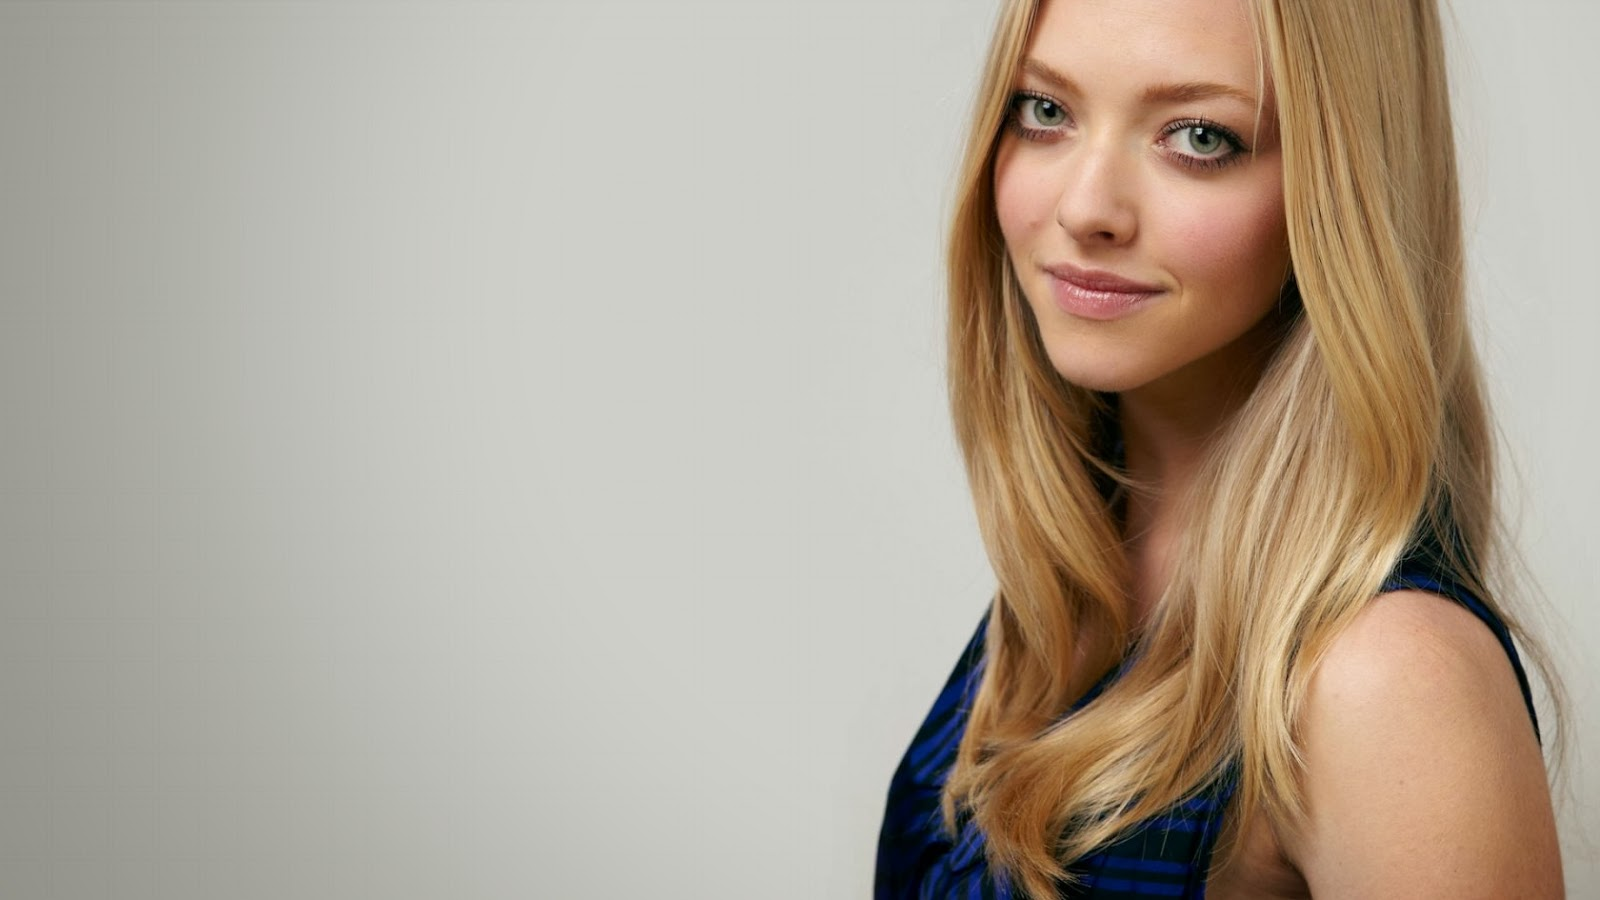 dreamology amanda seyfried hd - photo #13